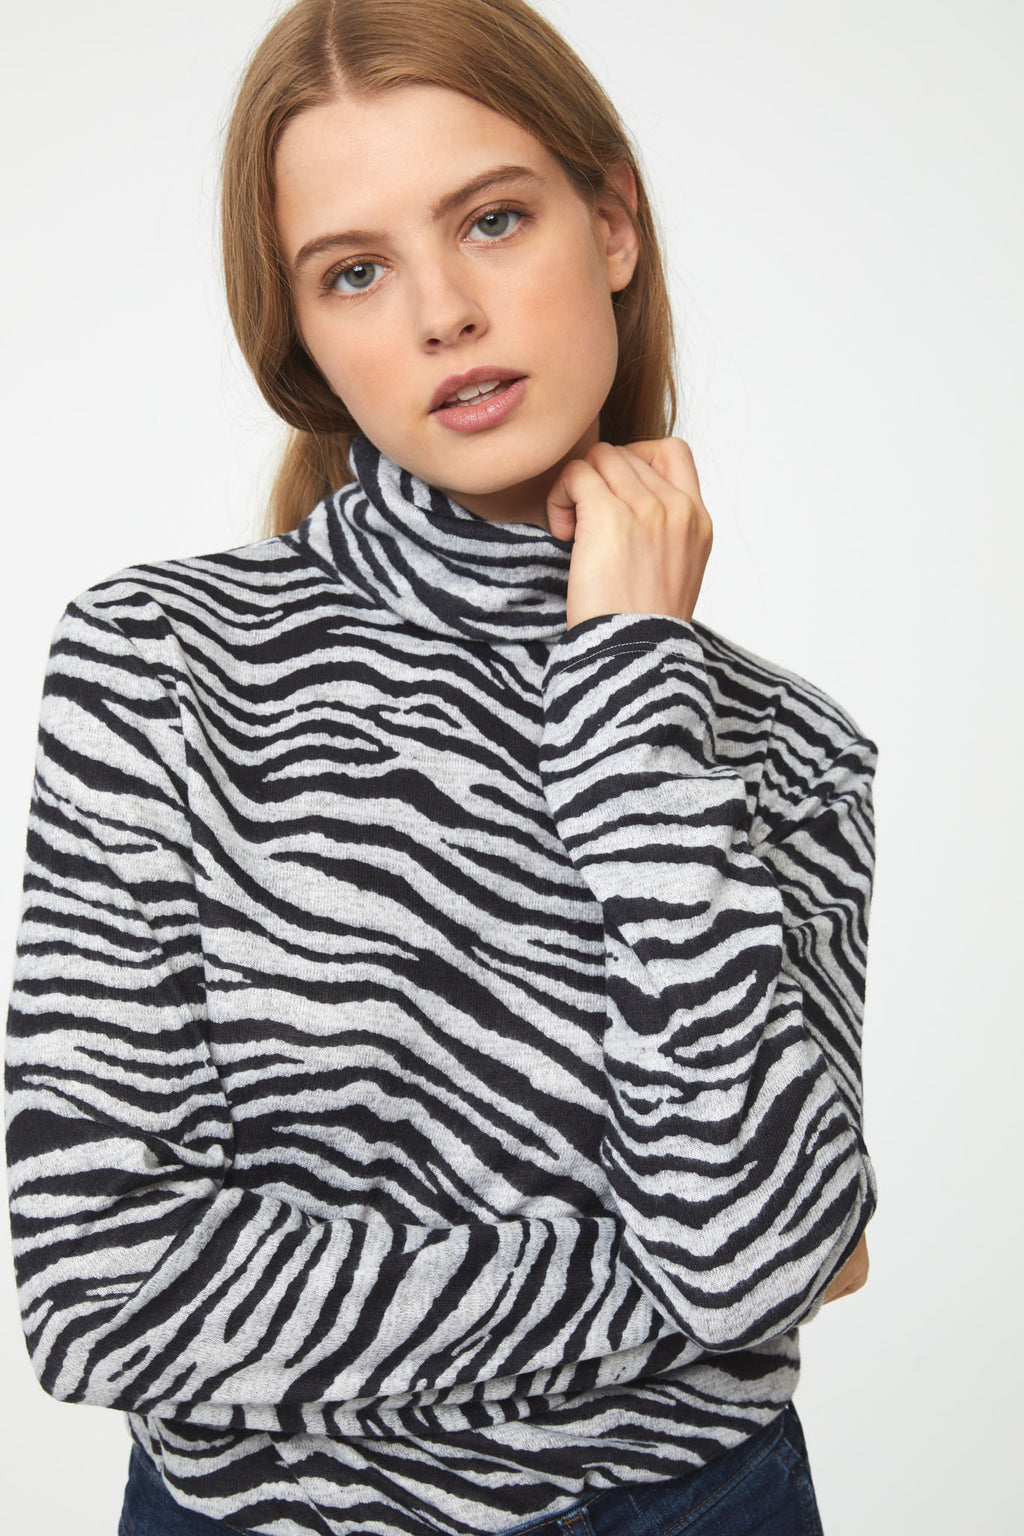 Woman wearing long sleeve zebra-print turtleneck sweater